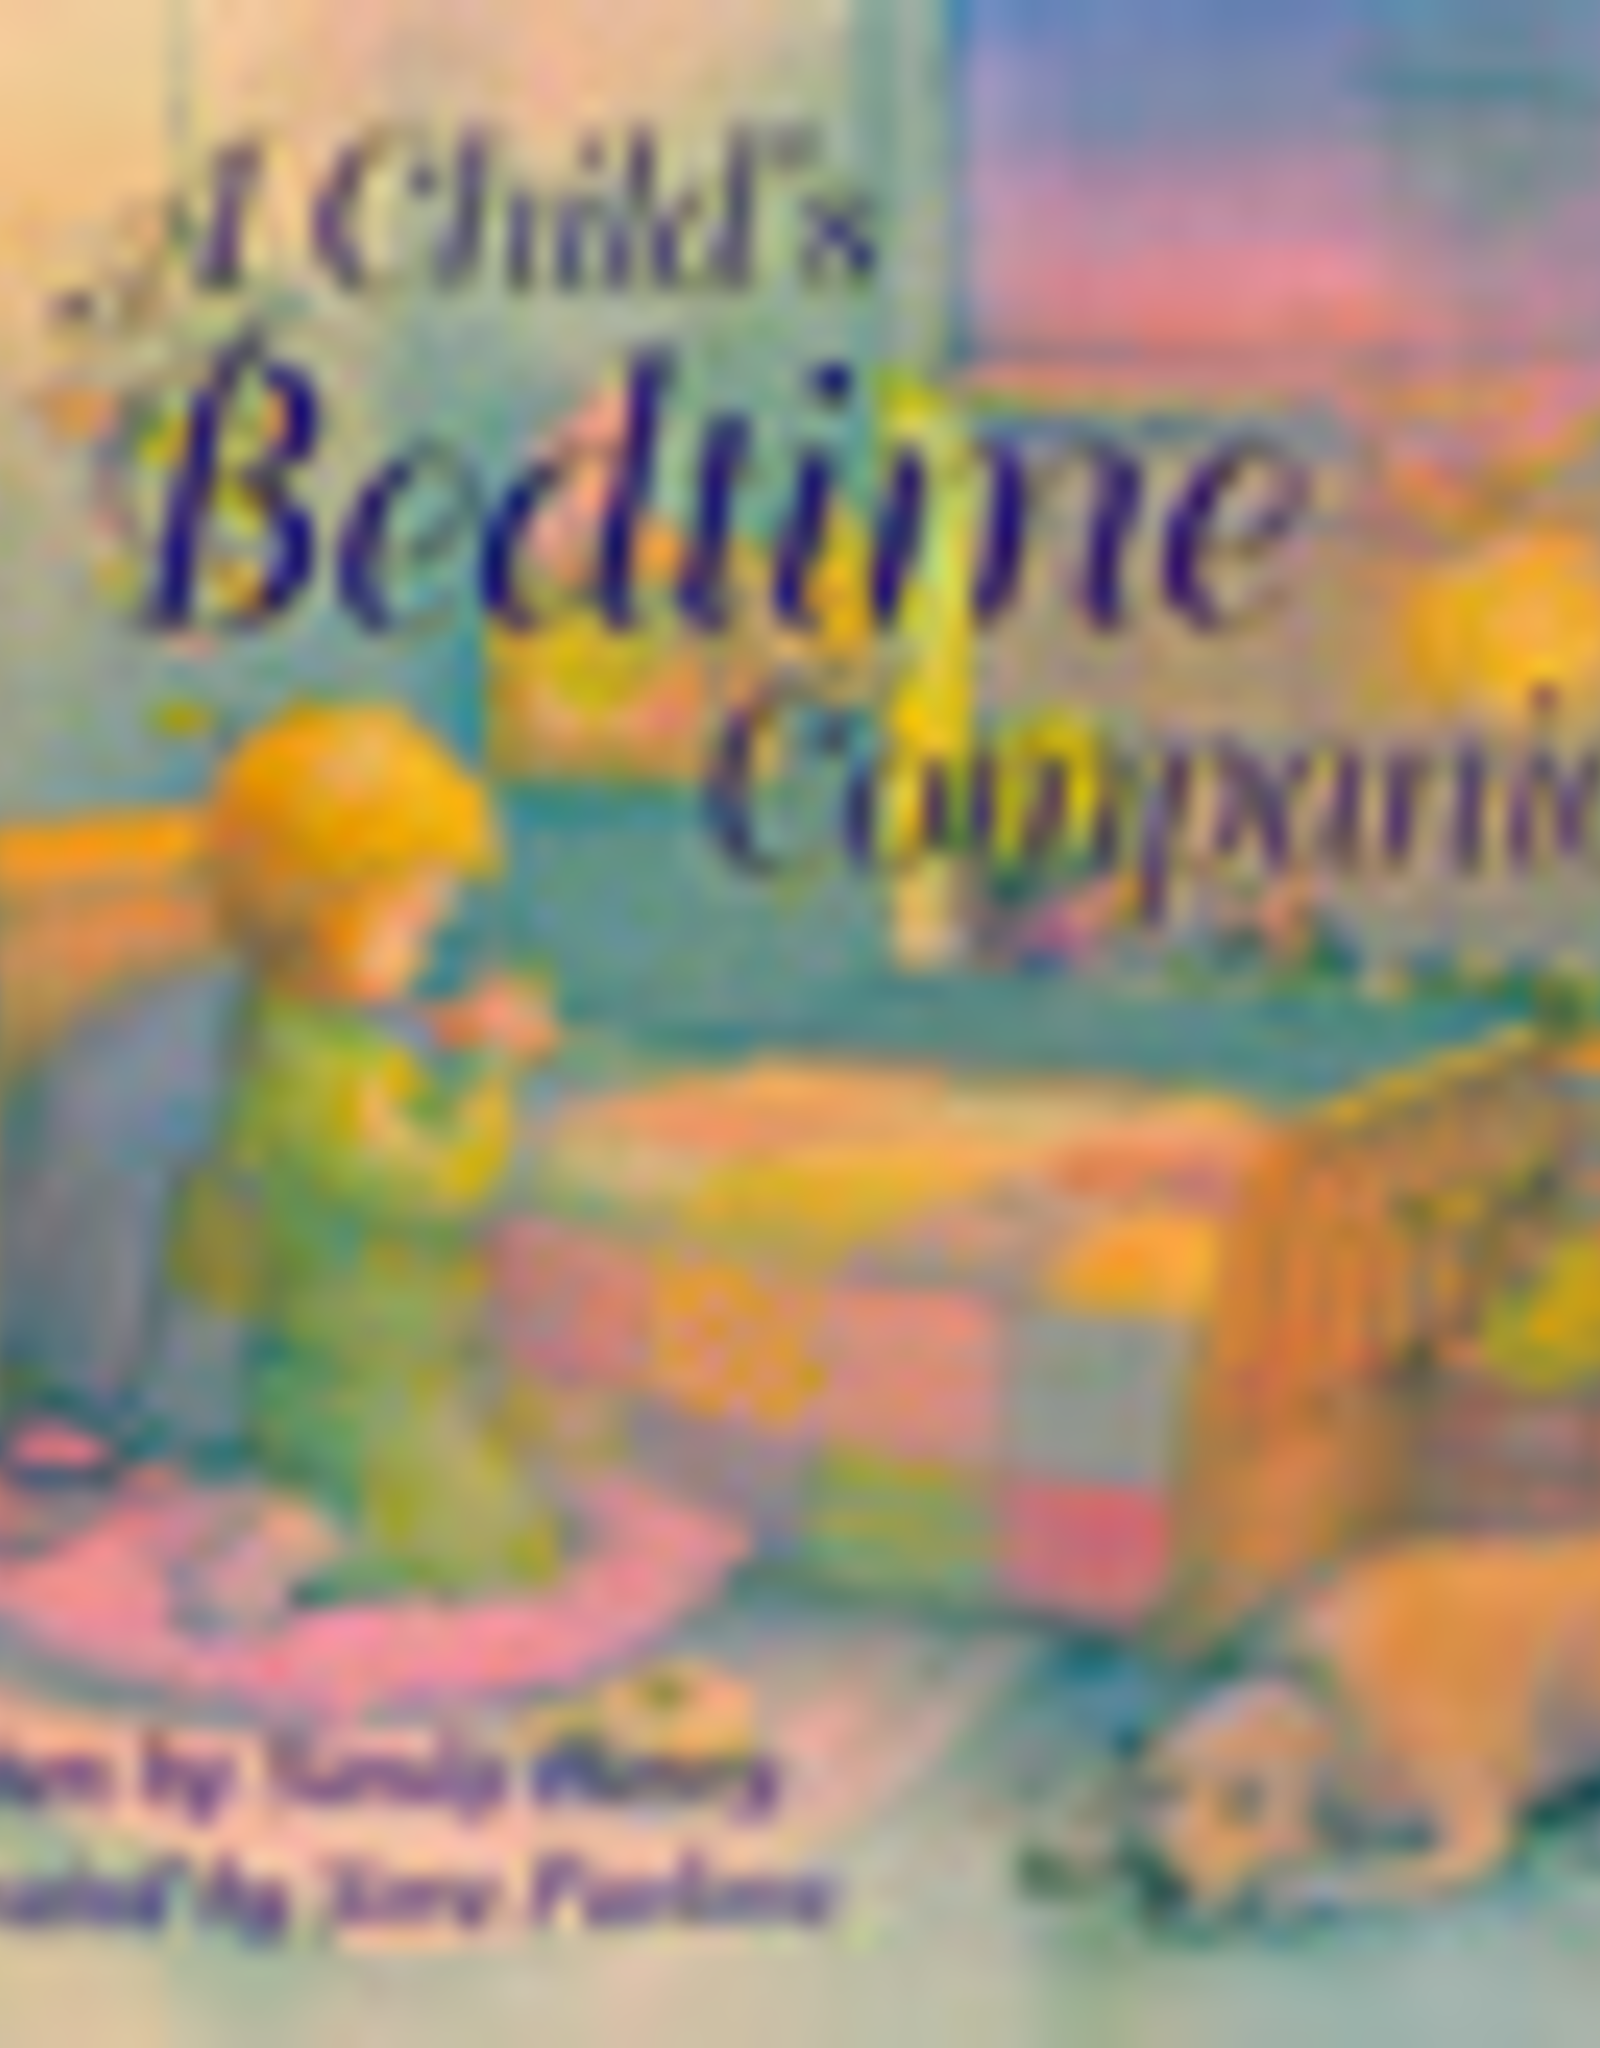 Paulist Press A Child's Bedtime Companion, by Sandy Henry (hardcover)